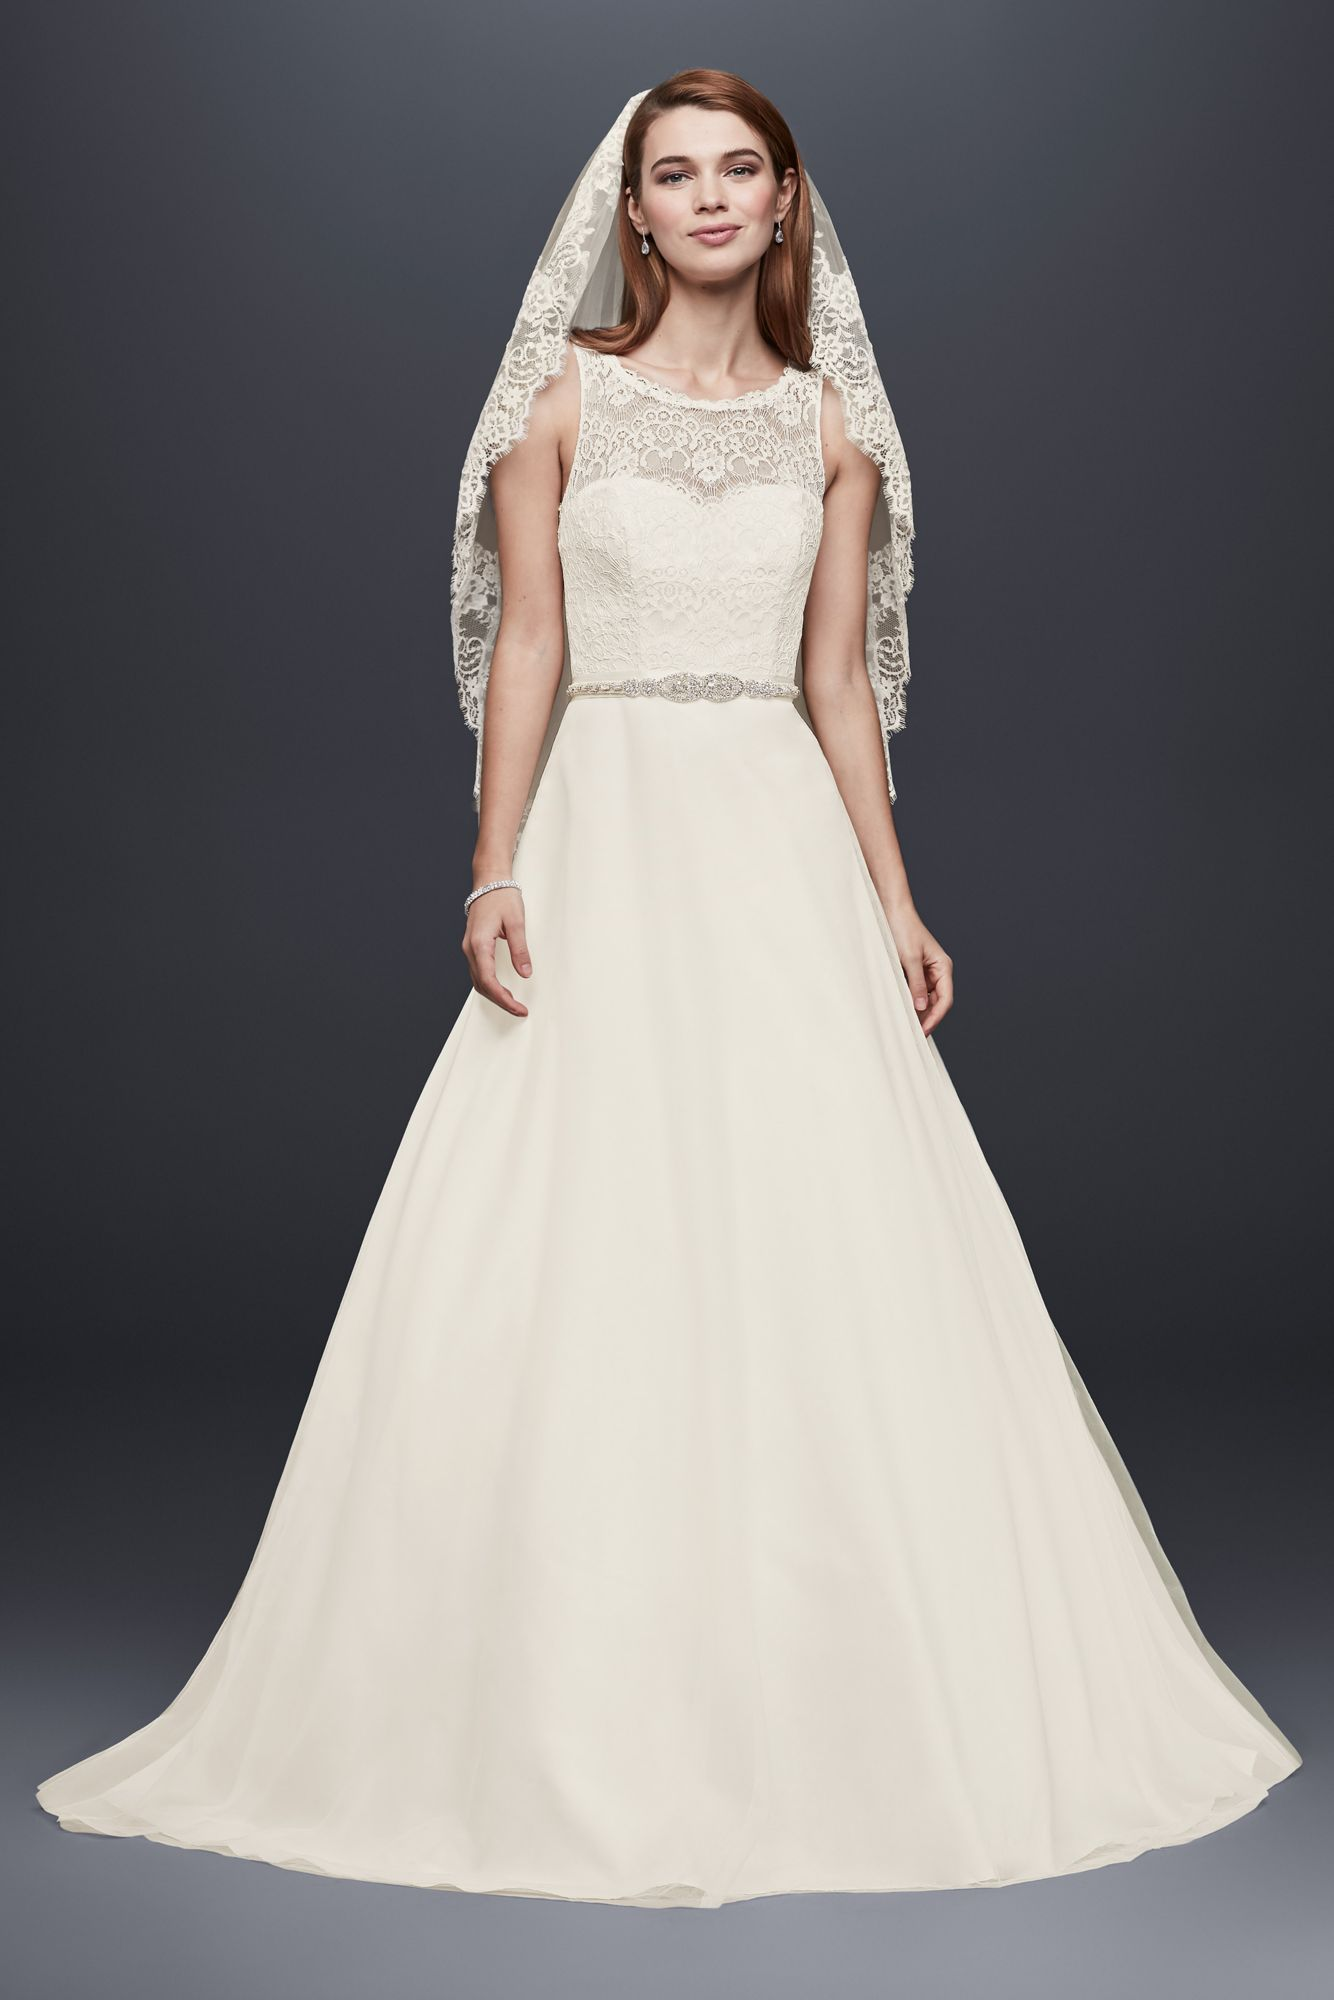 Illusion lace wedding dress  Illusion Lace Tank ALine Gown with Tulle Skirt Style WG